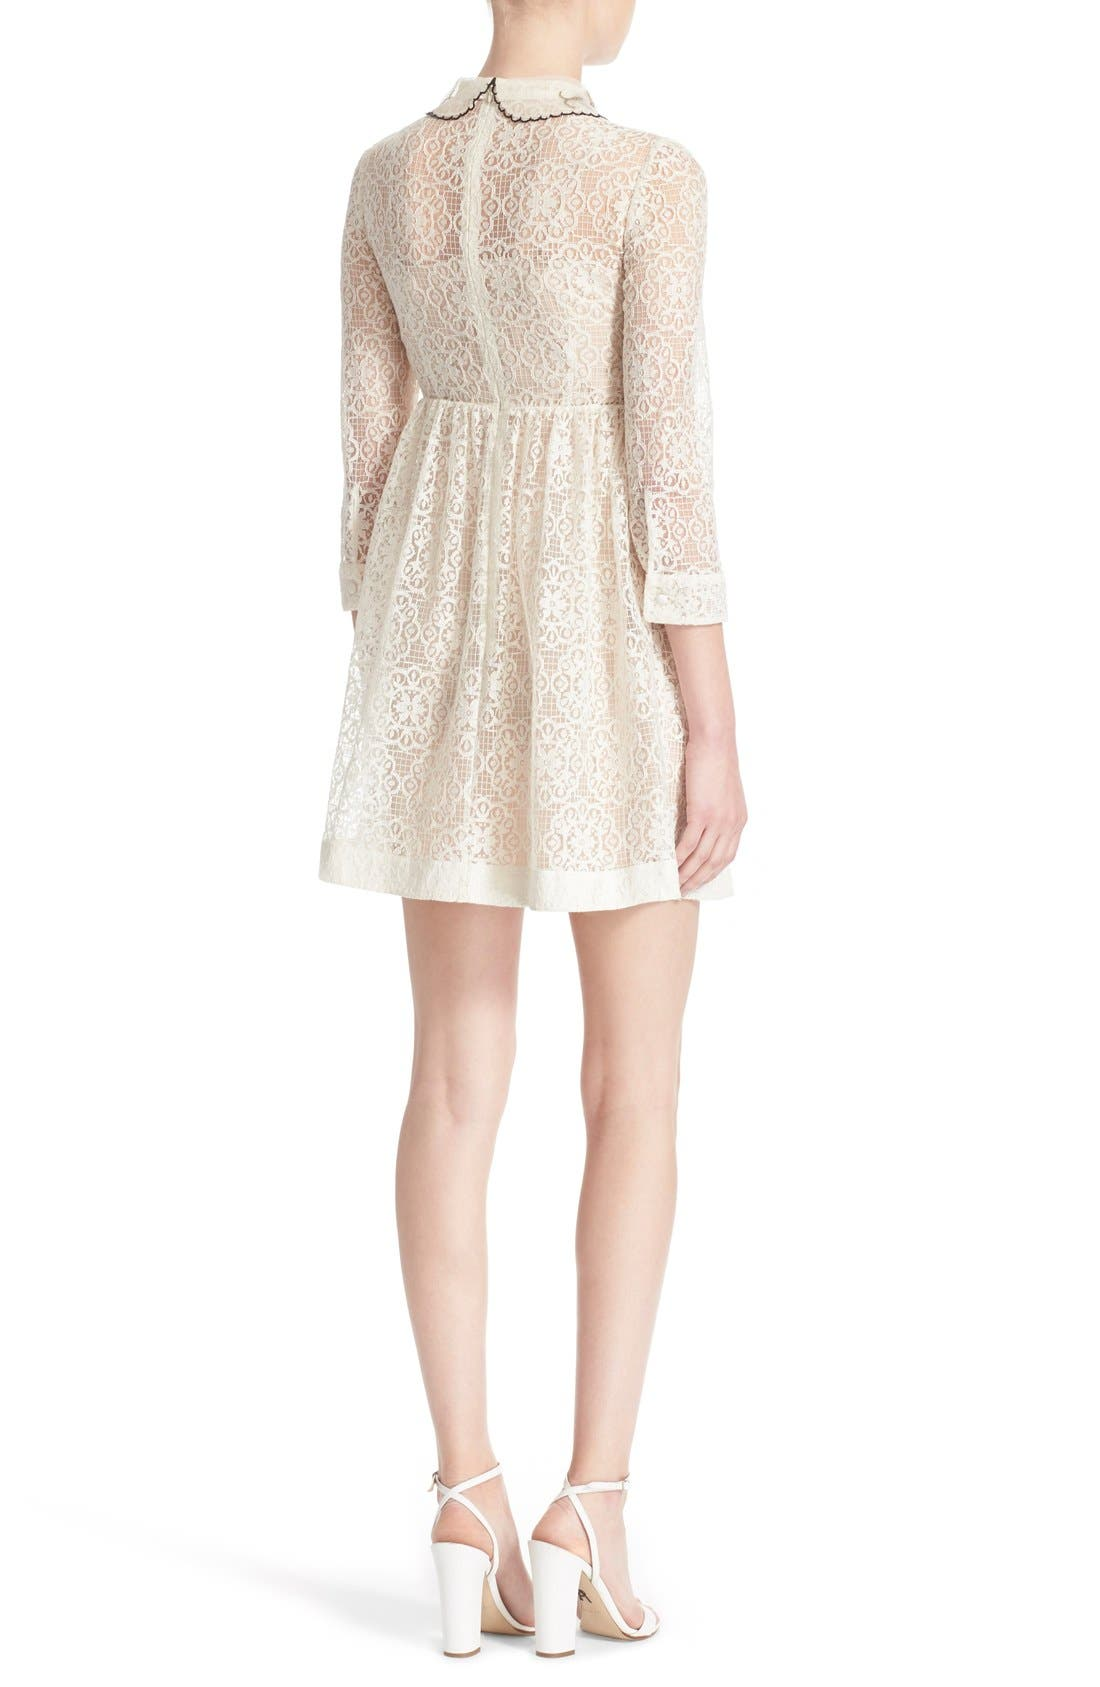 RED VALENTINO,                             Smocked Bodice Lace Dress,                             Alternate thumbnail 6, color,                             900